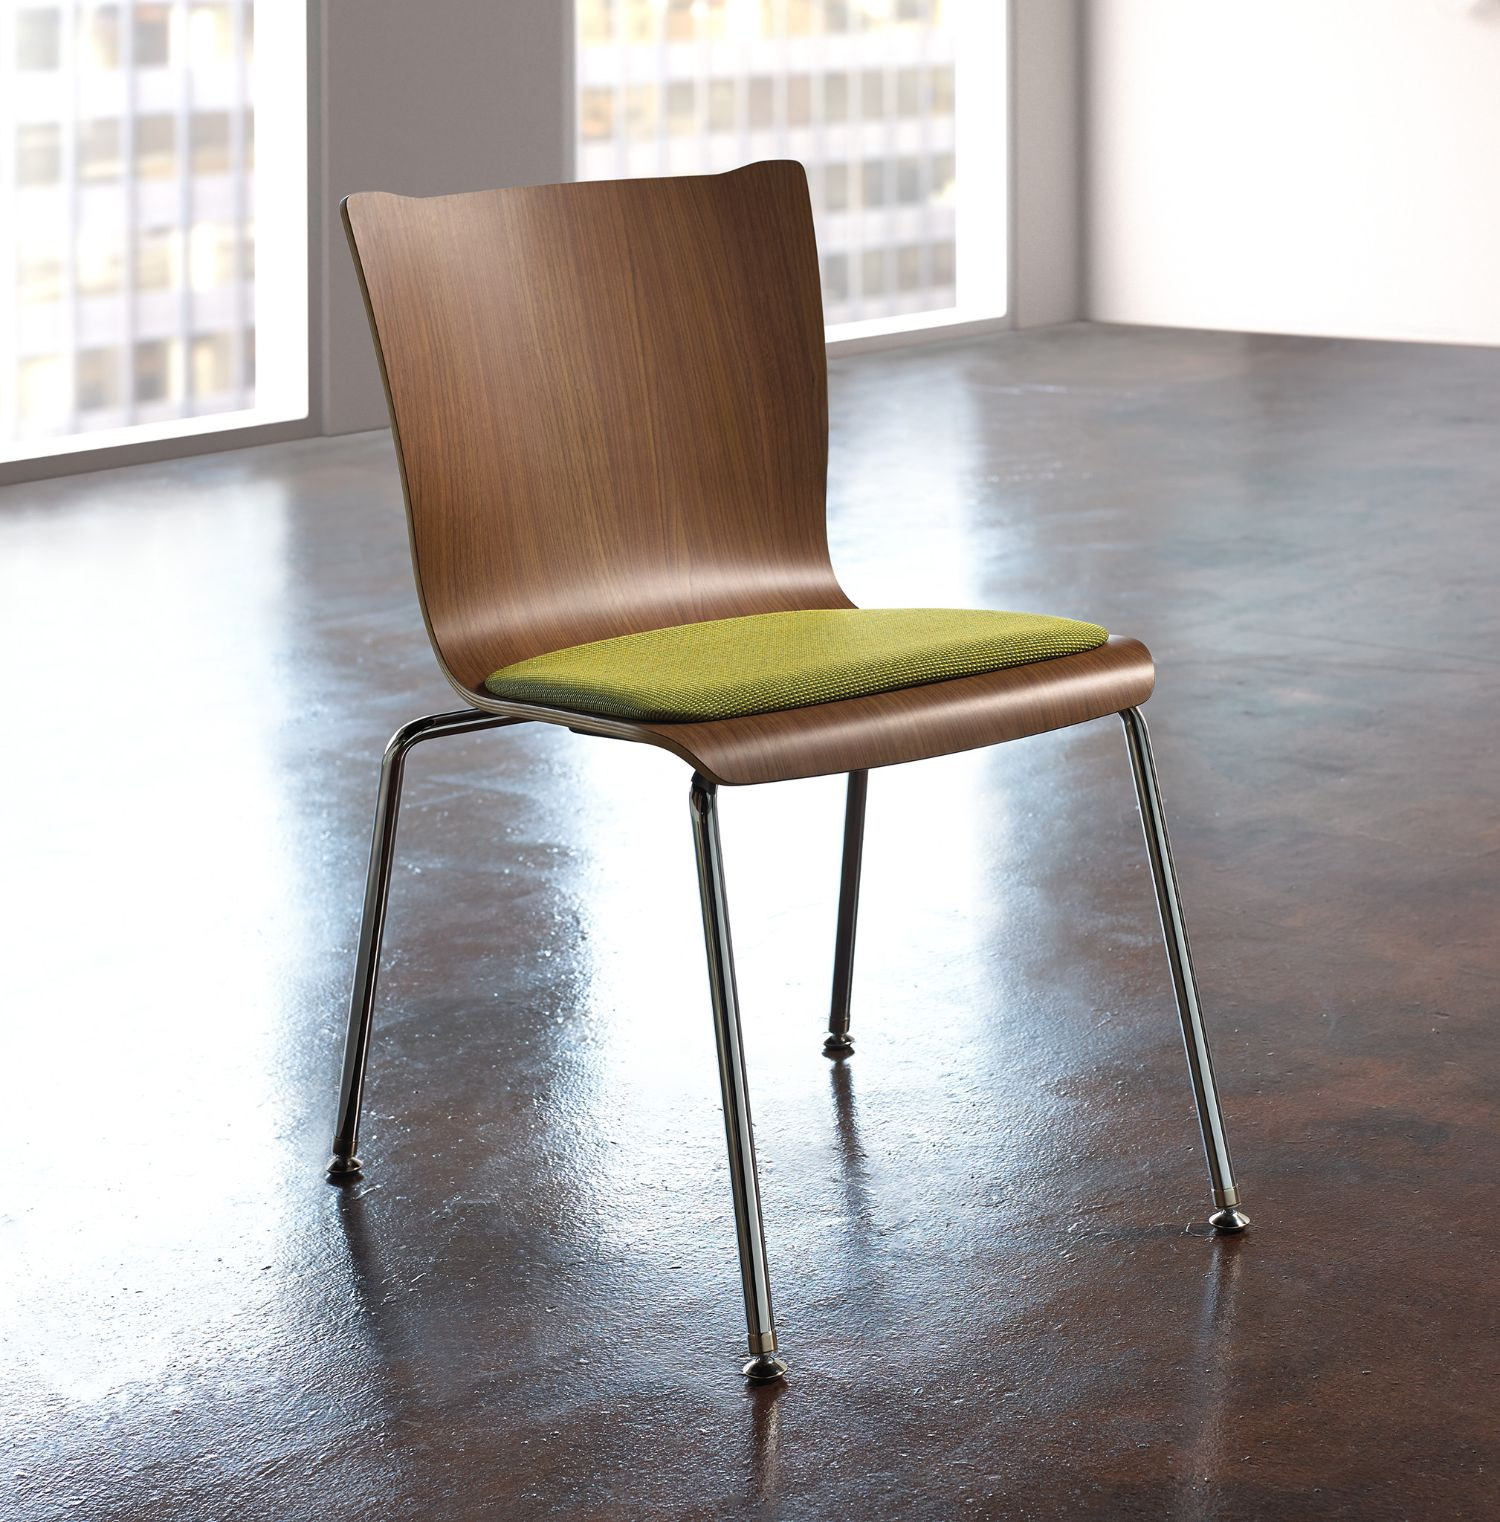 ki apply wood chair with upholstered seat pad